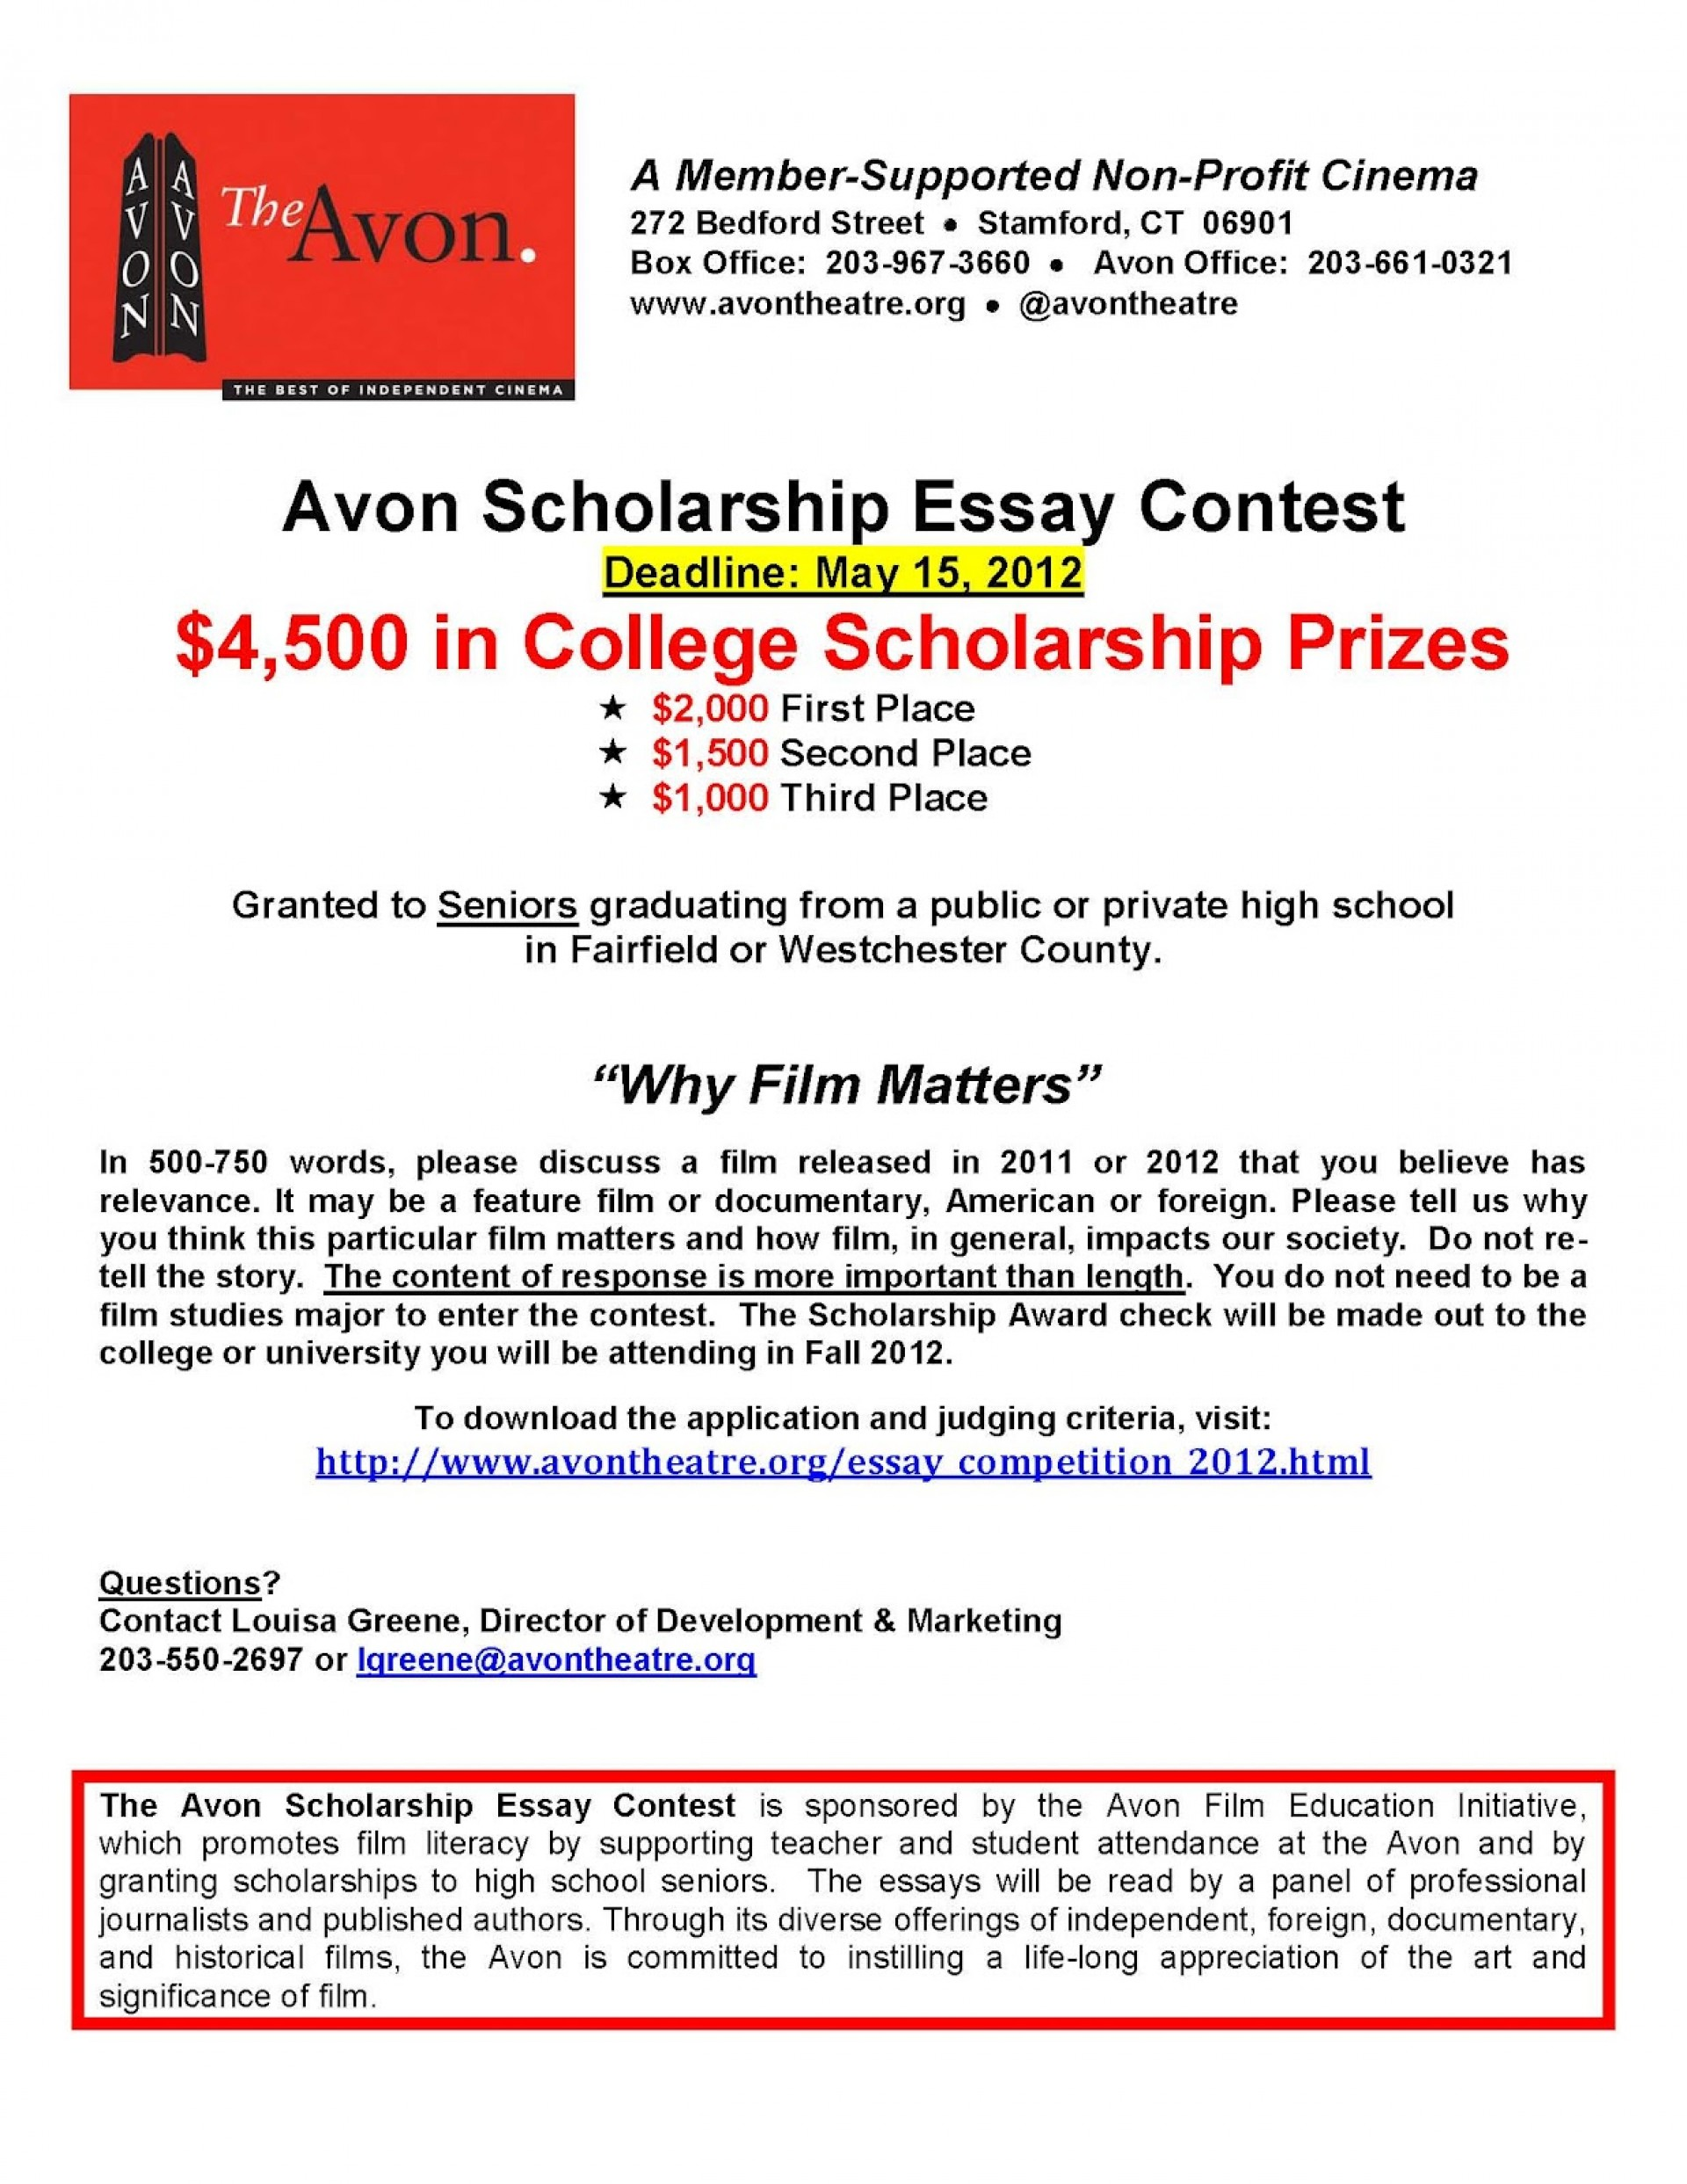 016 Avonscholarshipessaycontest2012flyer Essay Example Shocking Scholarships 2018 For International Students Examples Canada 2019 1920